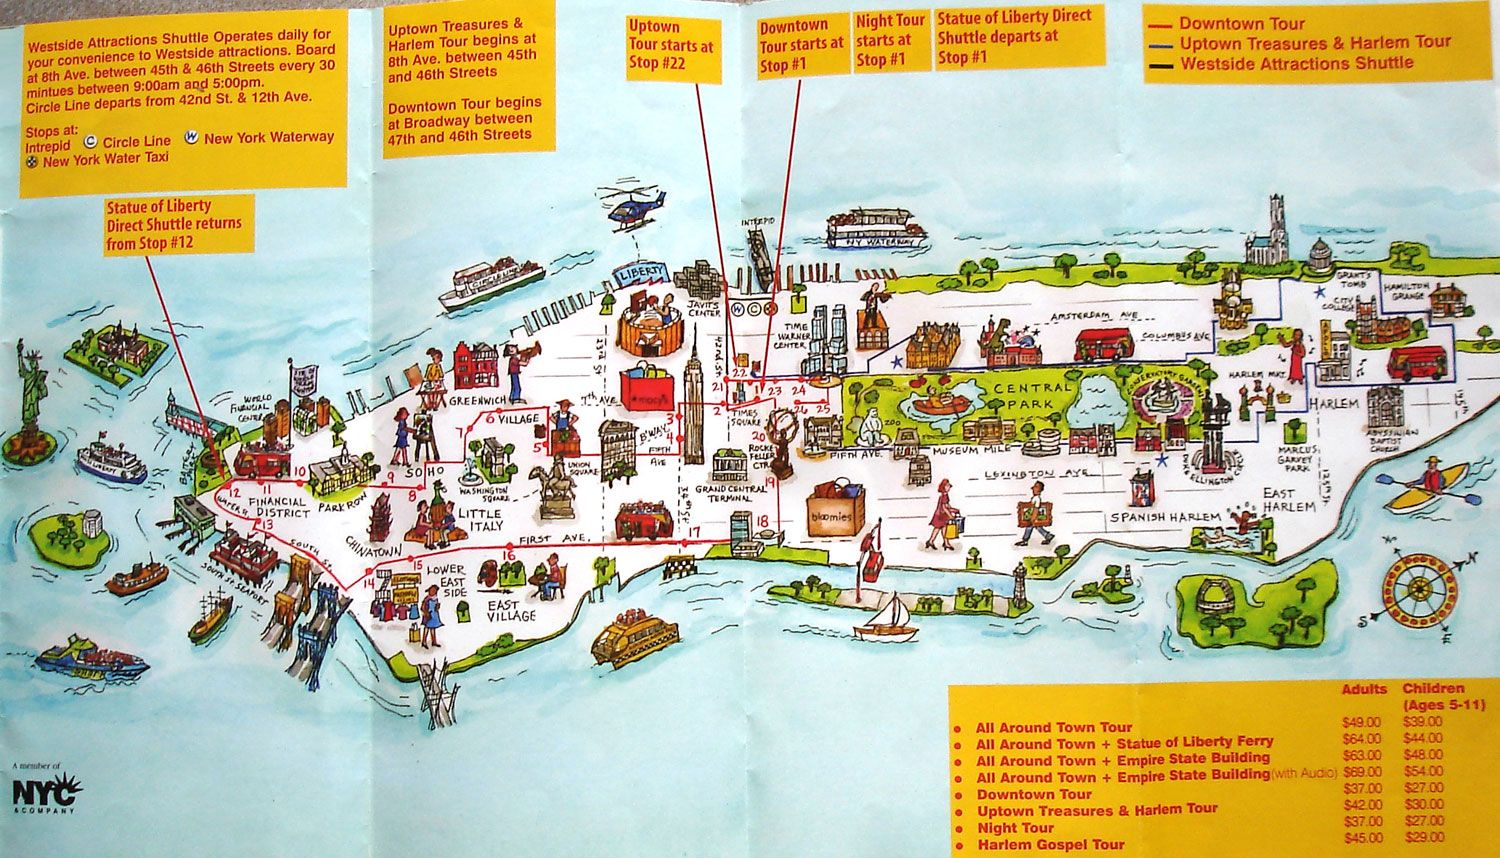 map of new york city attractions printable manhattan citysites tour map see map details from excitingnycom